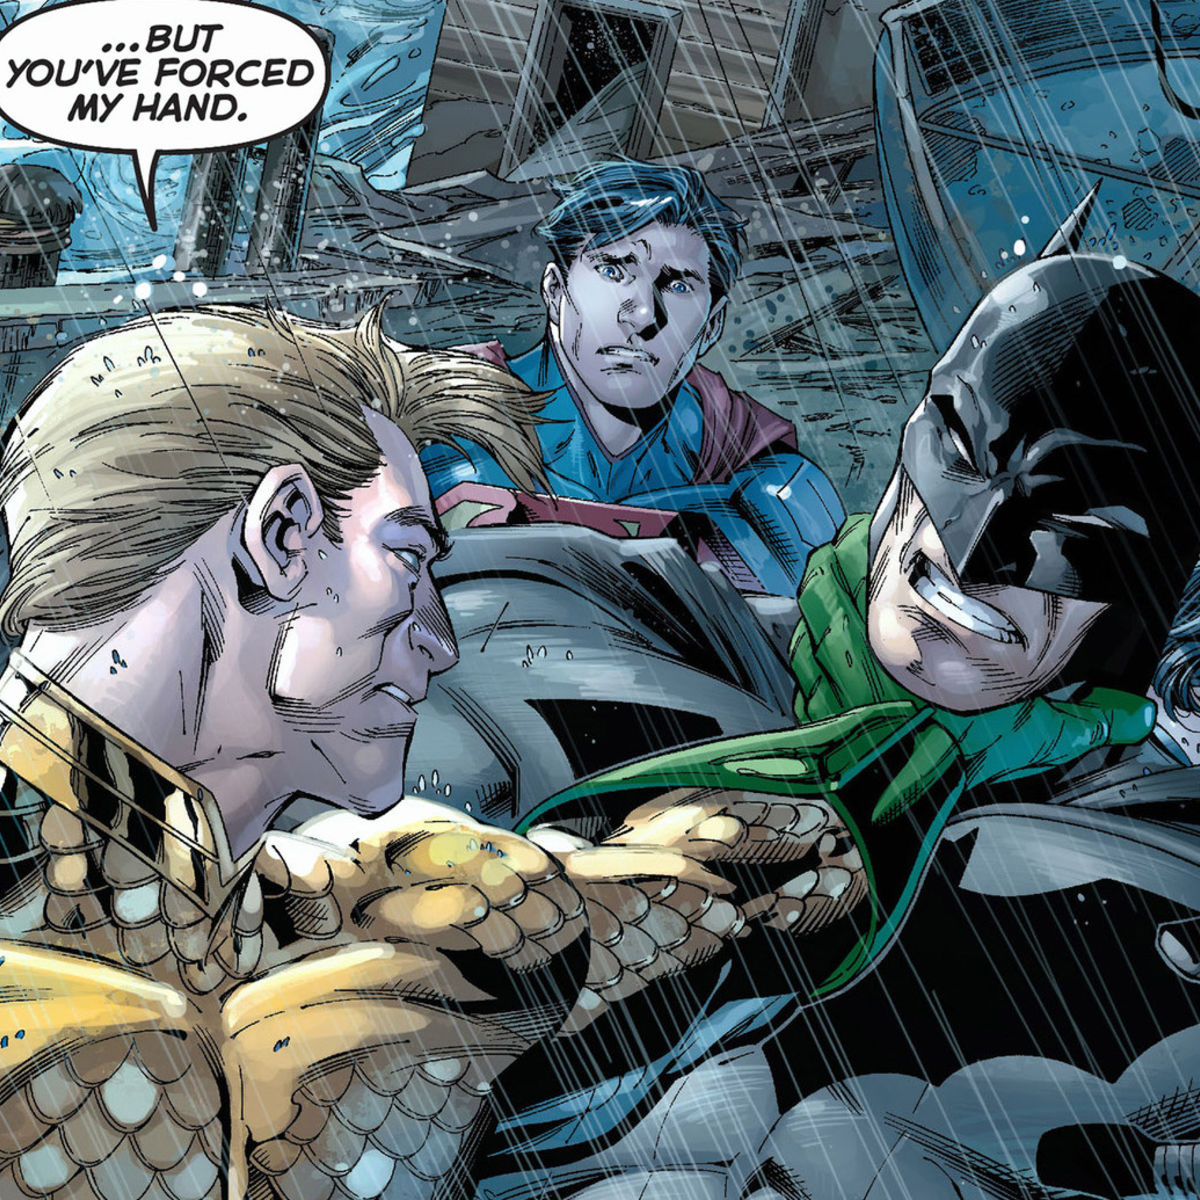 aquaman-vs-batman-e1379766944637.jpg